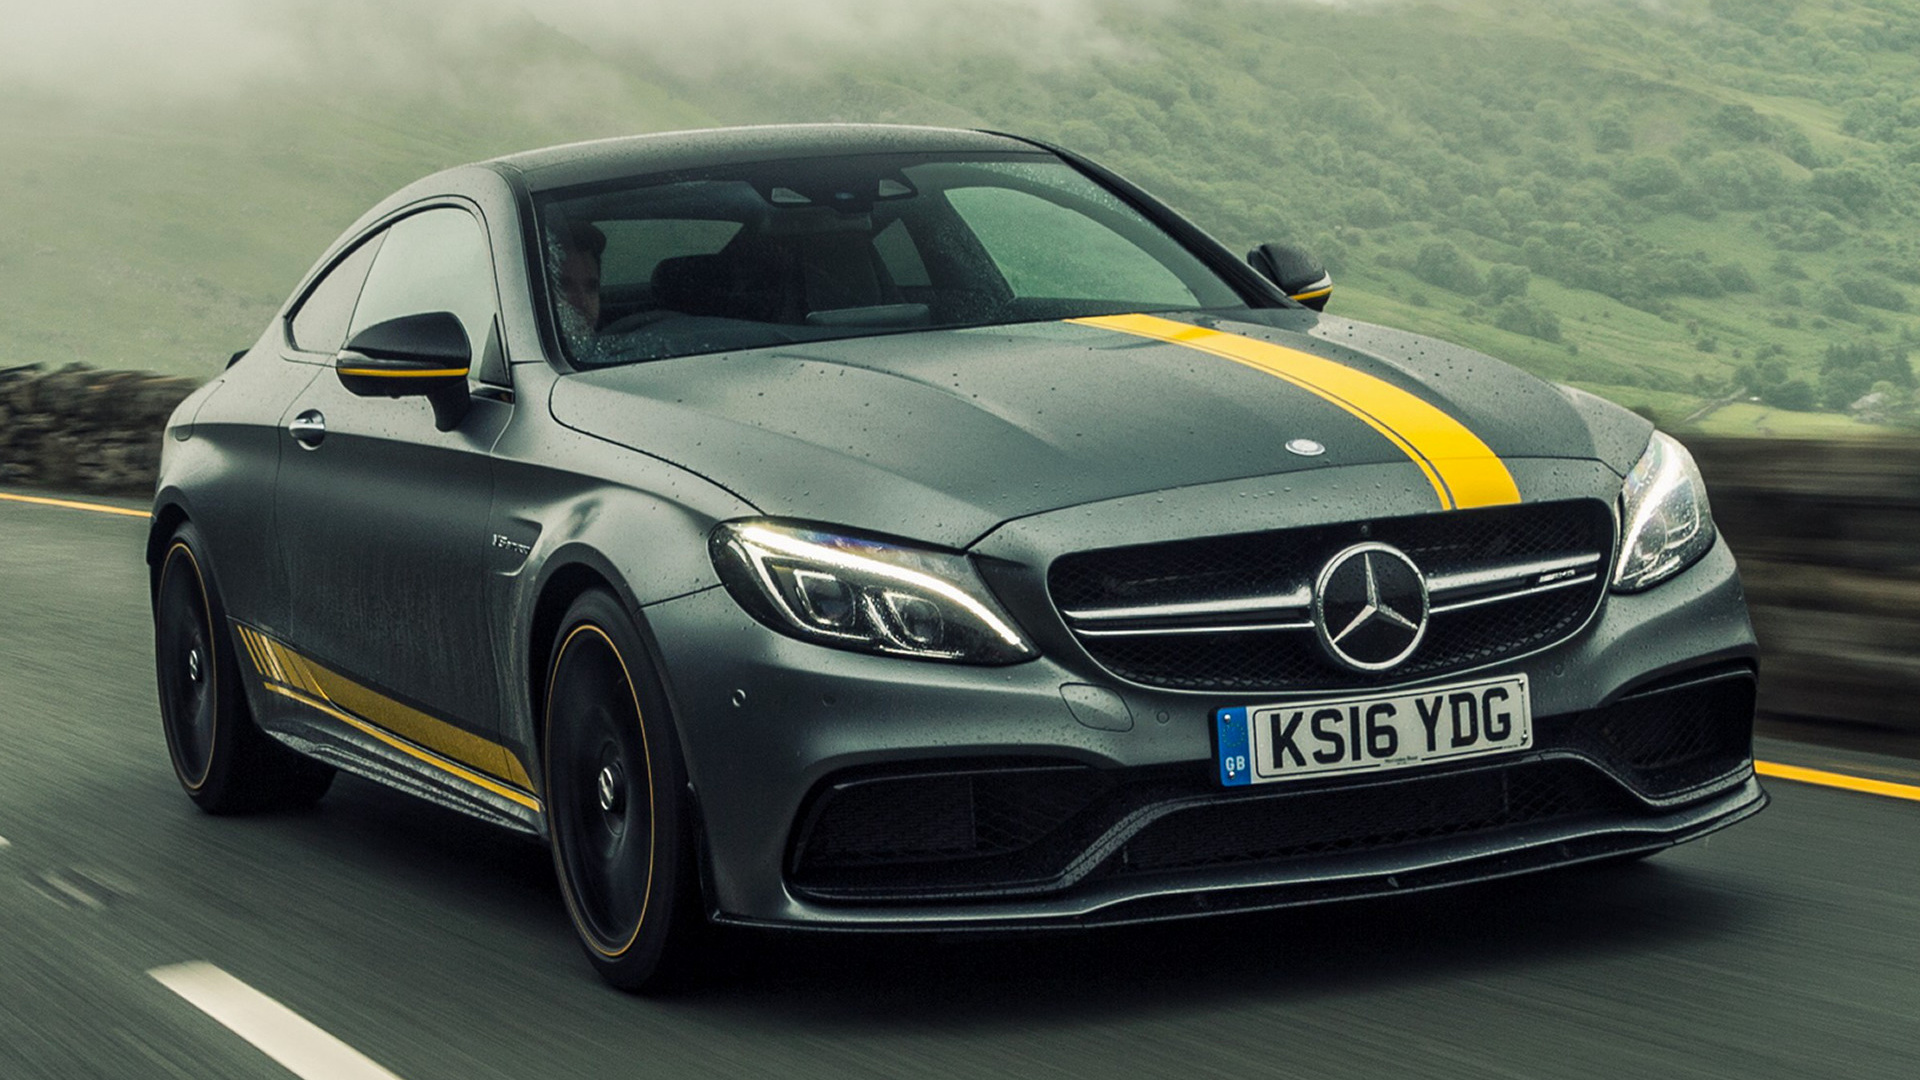 2016 Hyundai Genesis Coupe >> 2016 Mercedes-AMG C 63 S Coupe Edition 1 (UK) - Wallpapers ...